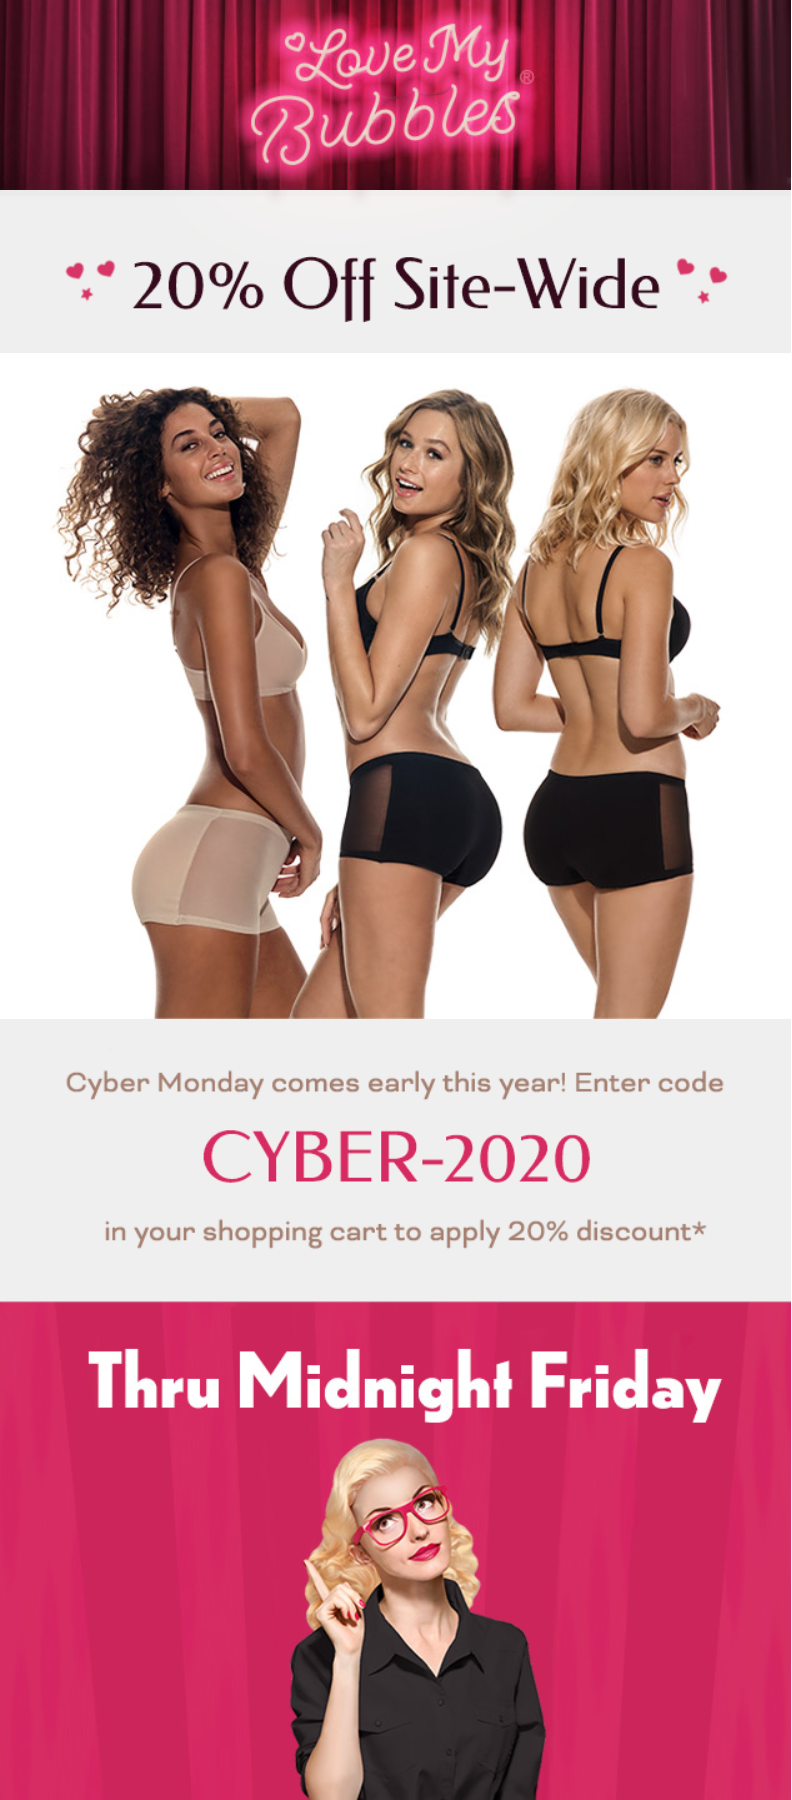 bubbles-bodywear-cyber-monday-comes-early-this-year